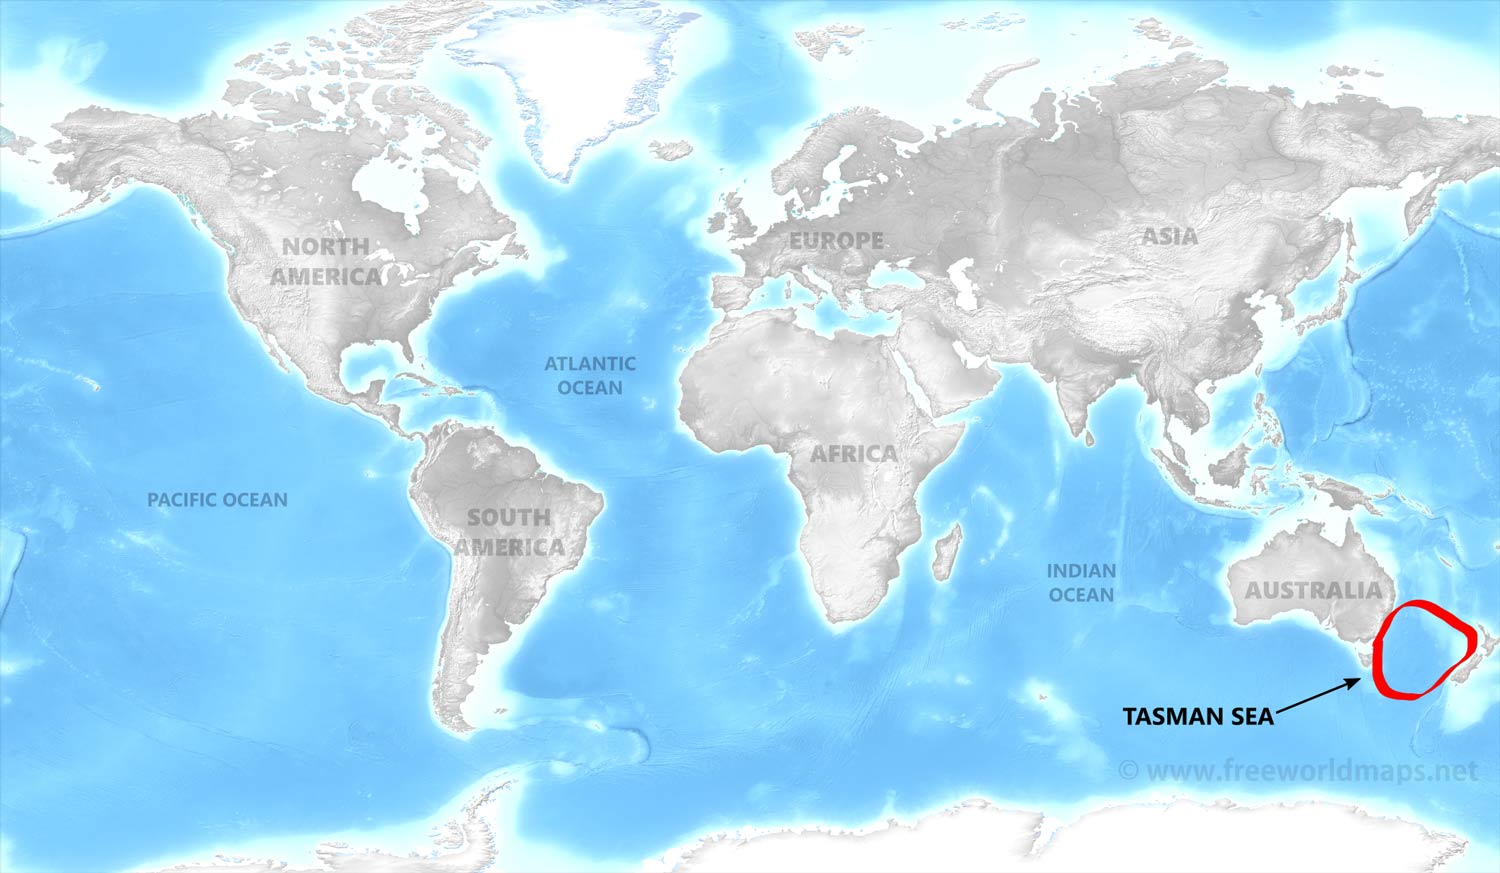 Tasman Sea map by Freeworldmapsnet